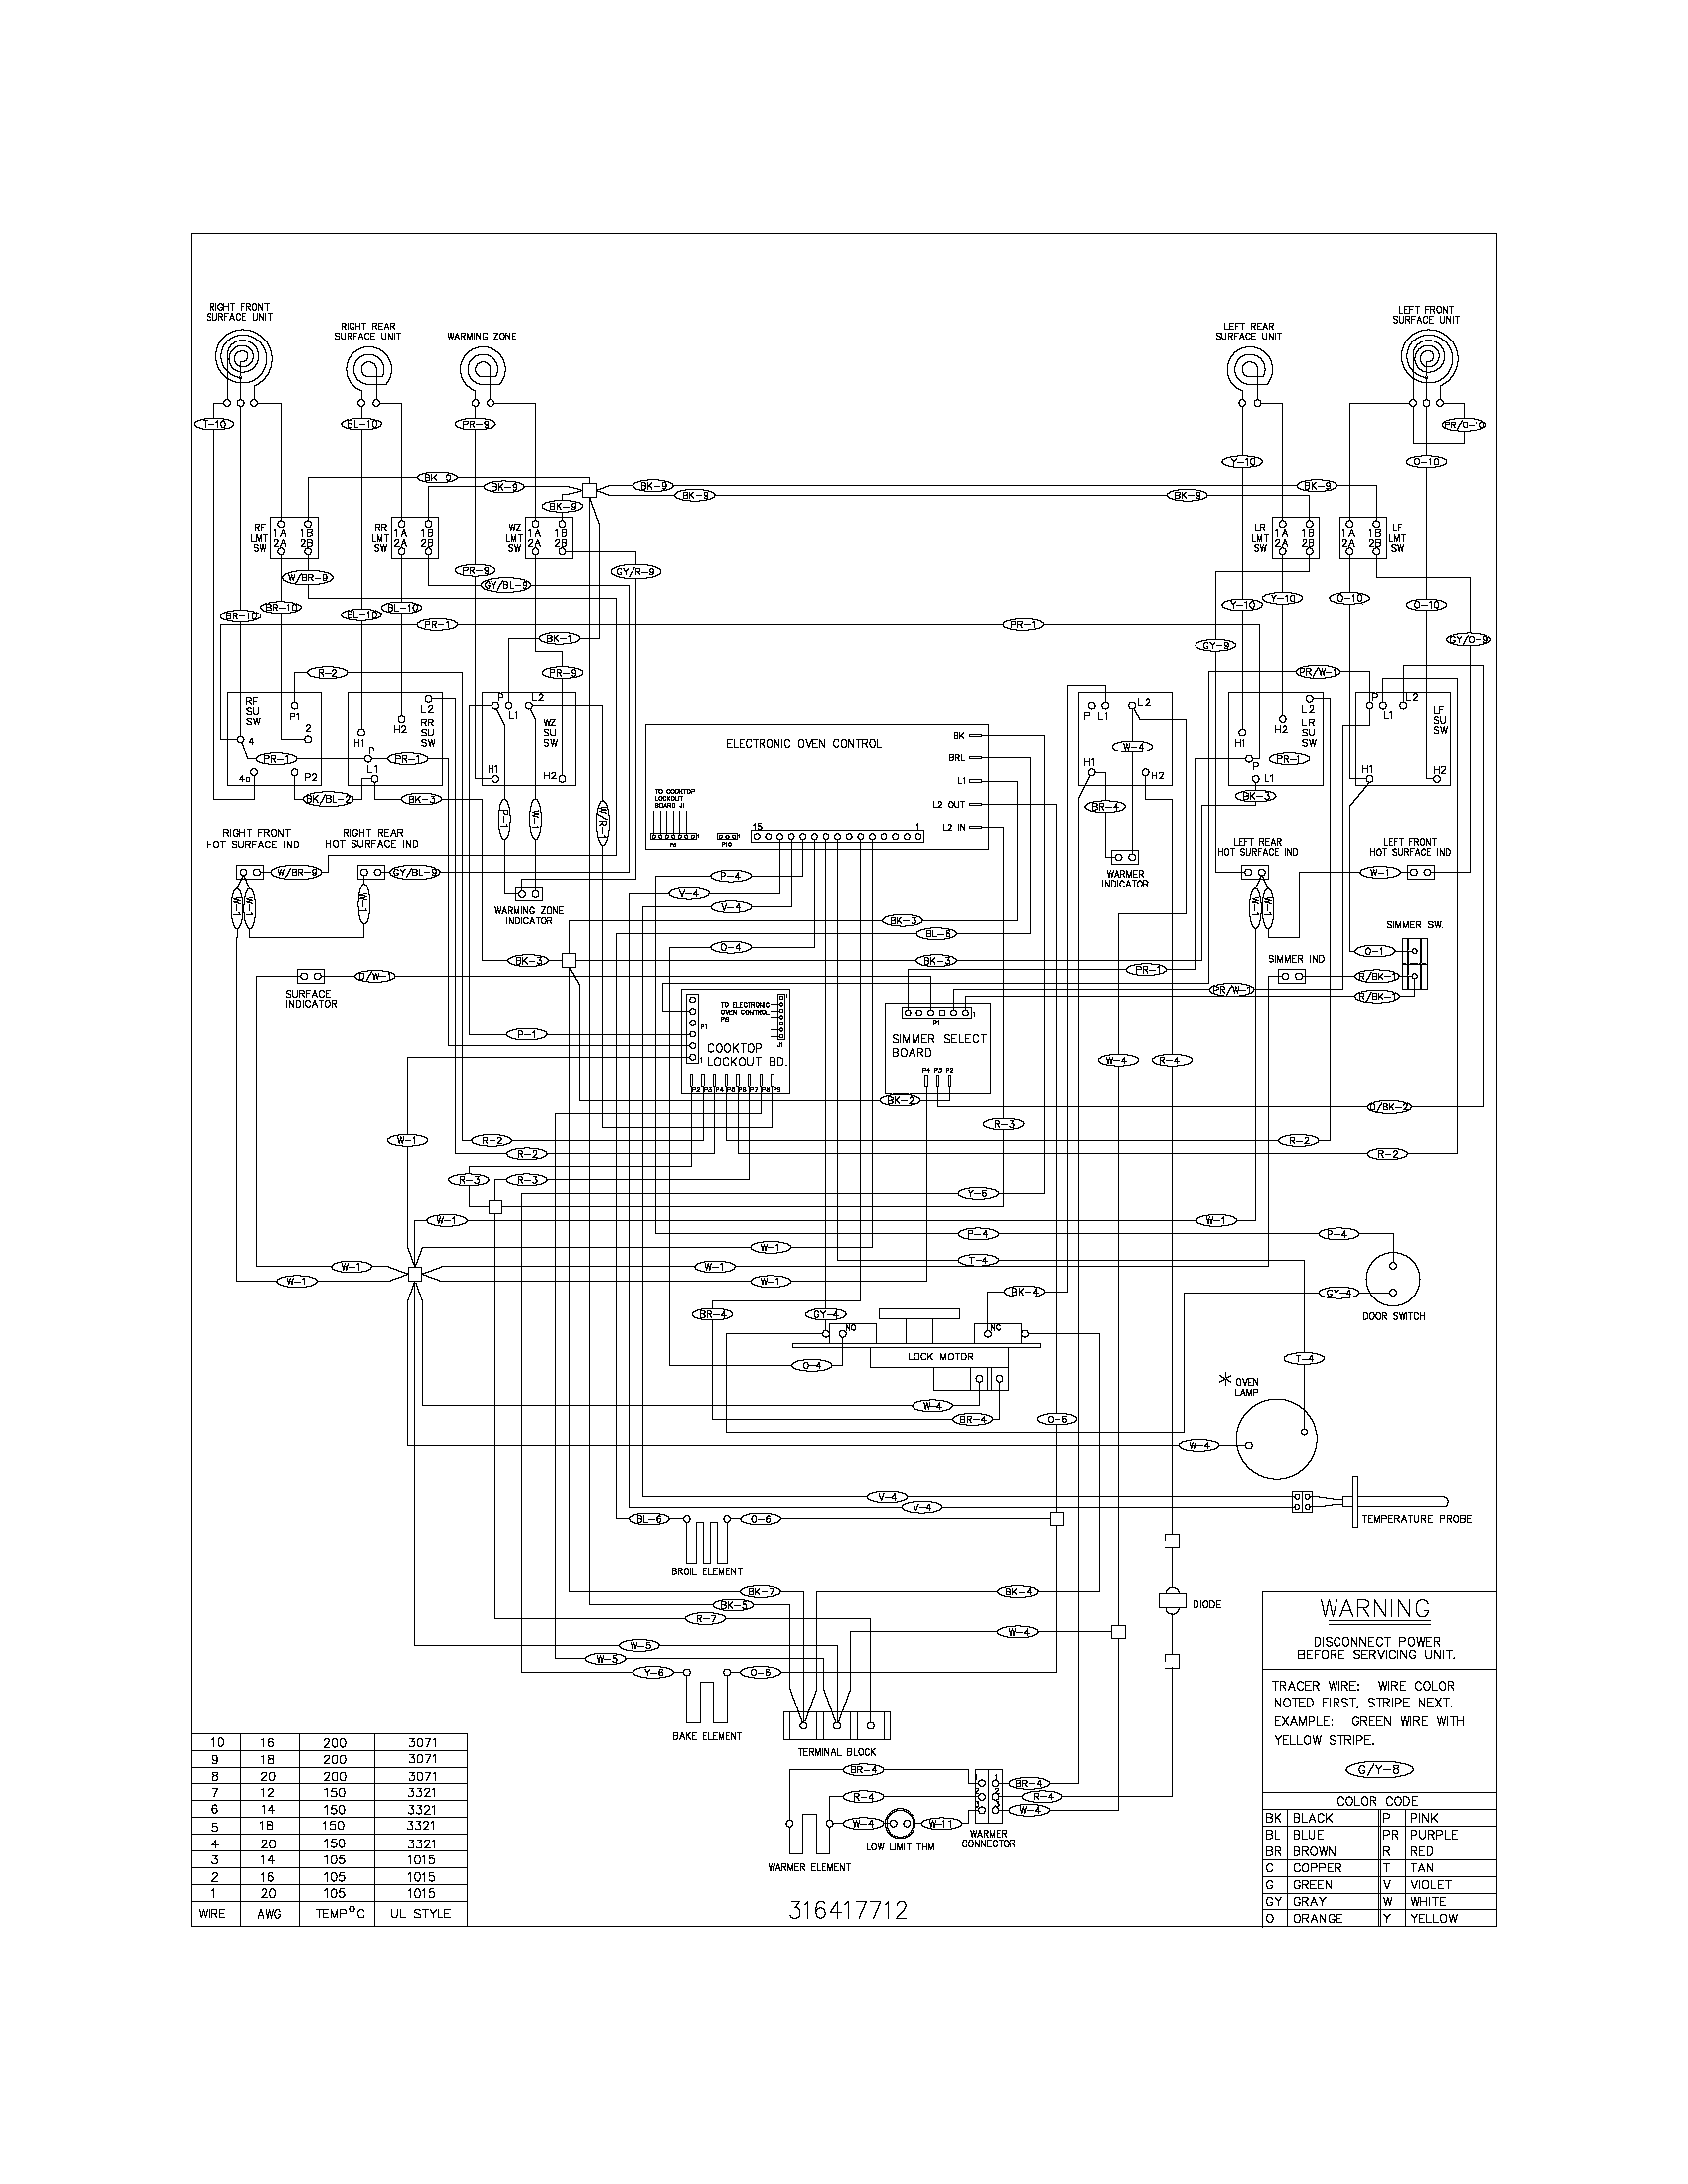 SOLVED: I need a wiring diagram for a Kenmore oven model